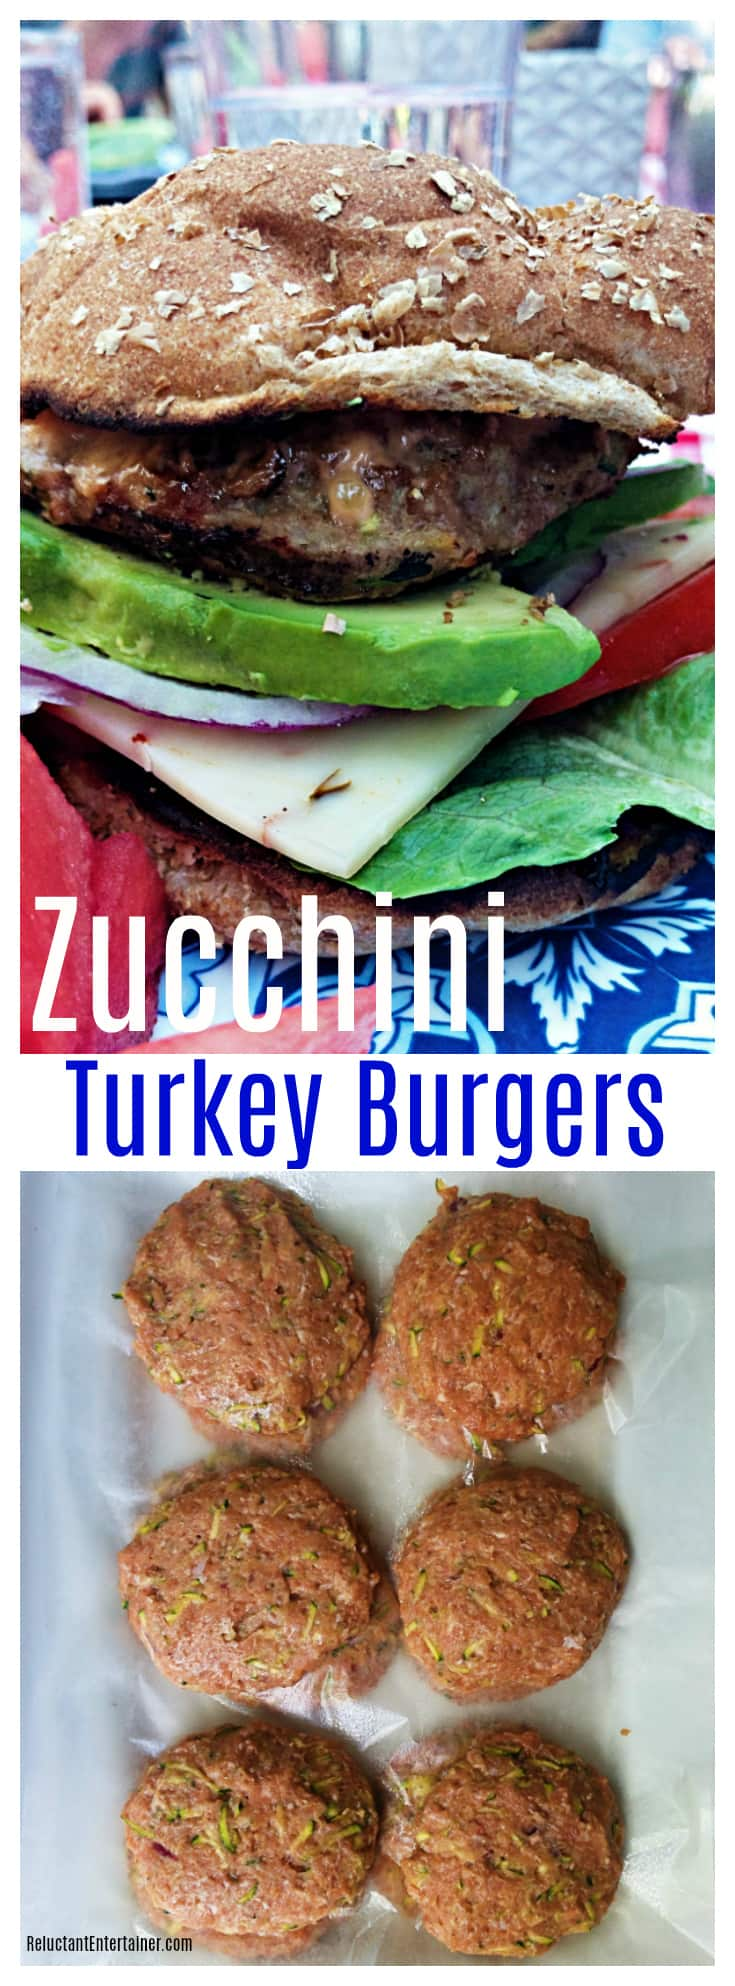 Summer Zucchini Turkey Burgers - Reluctant Entertainer